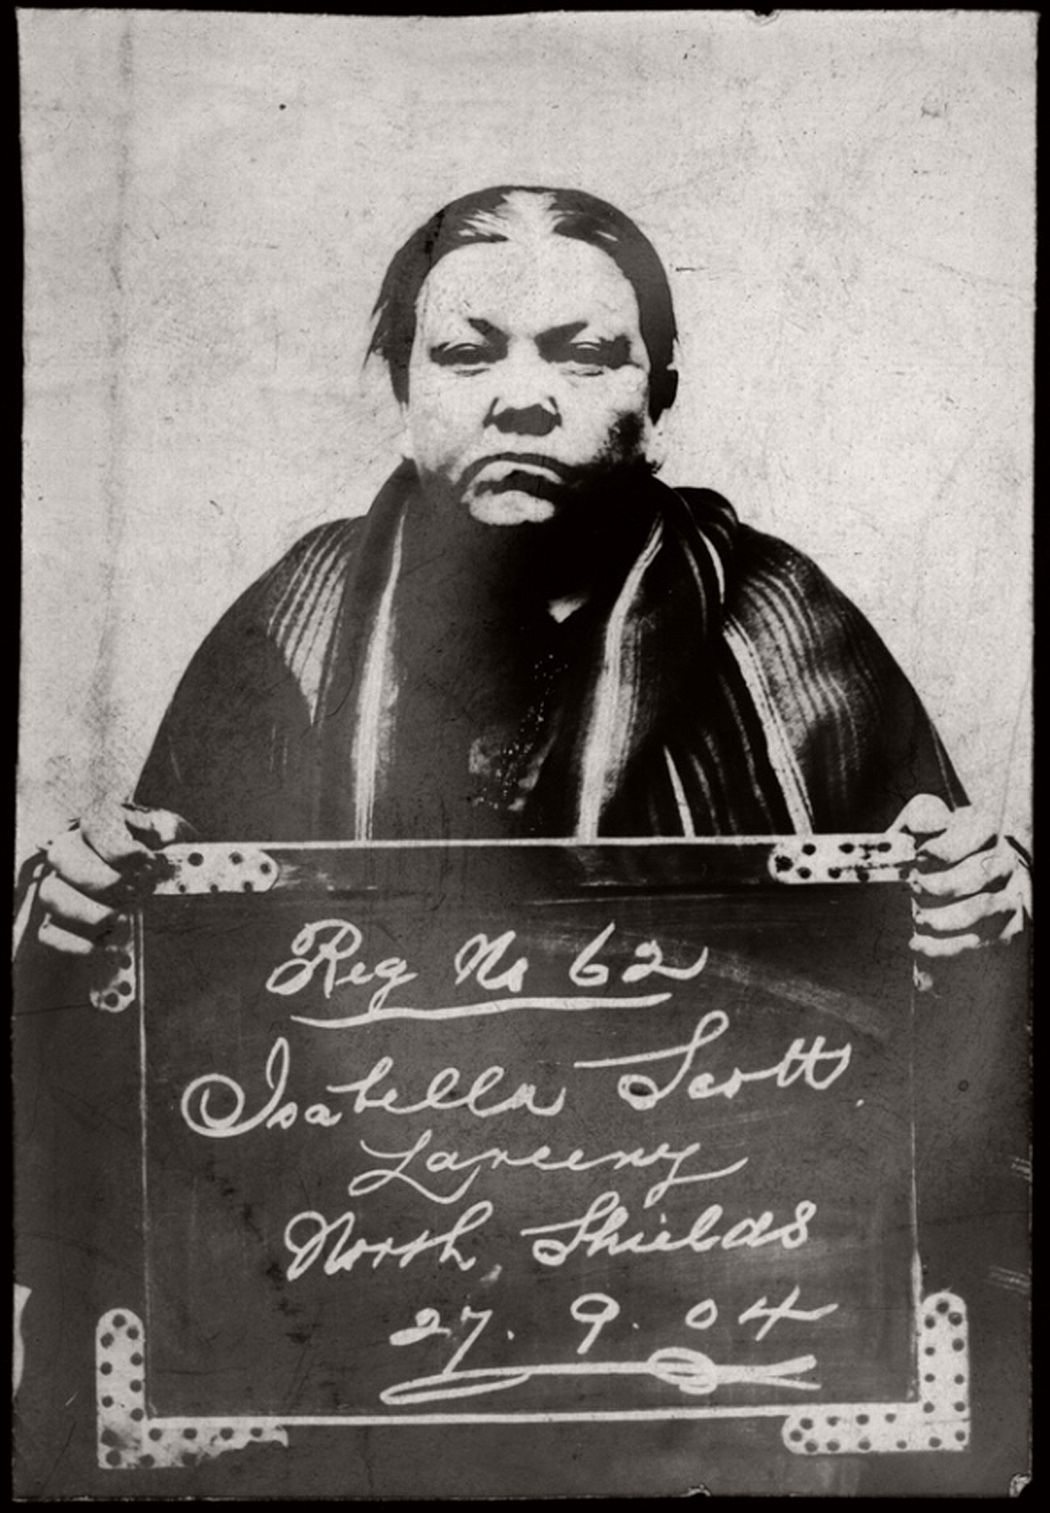 vintage-mug-shot-of-women-criminals-from-north-shields-1903-1905-05